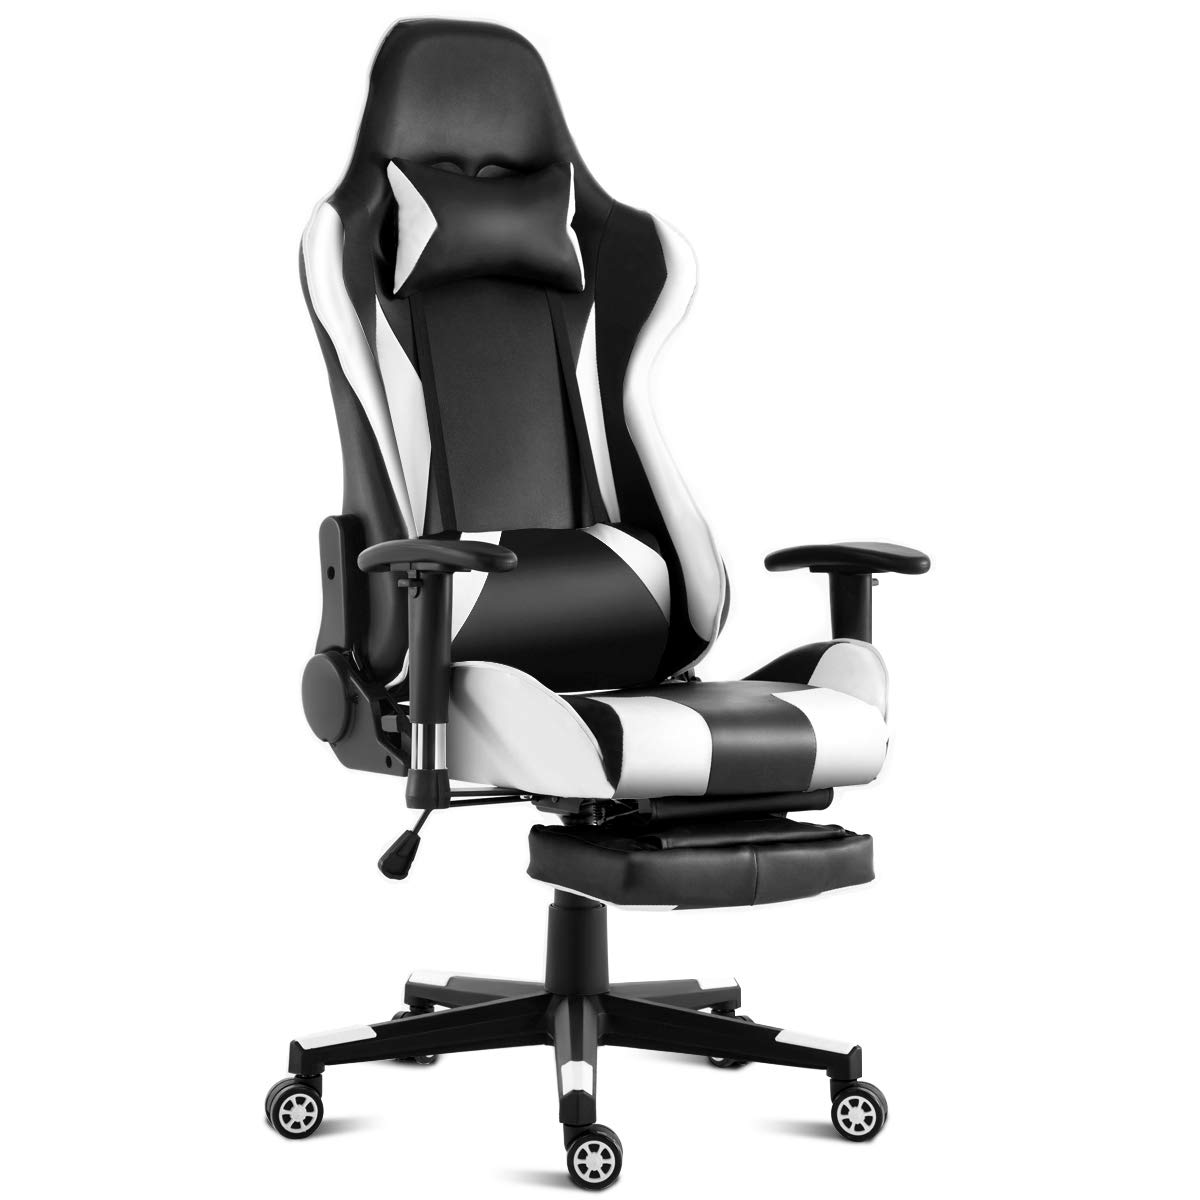 Giantex Ergonomic Massage Gaming Chair, High-Back Massage Lumbar Cushion Racing Chair with Retractable Footrest PU Leather Gaming Chair for Women Men